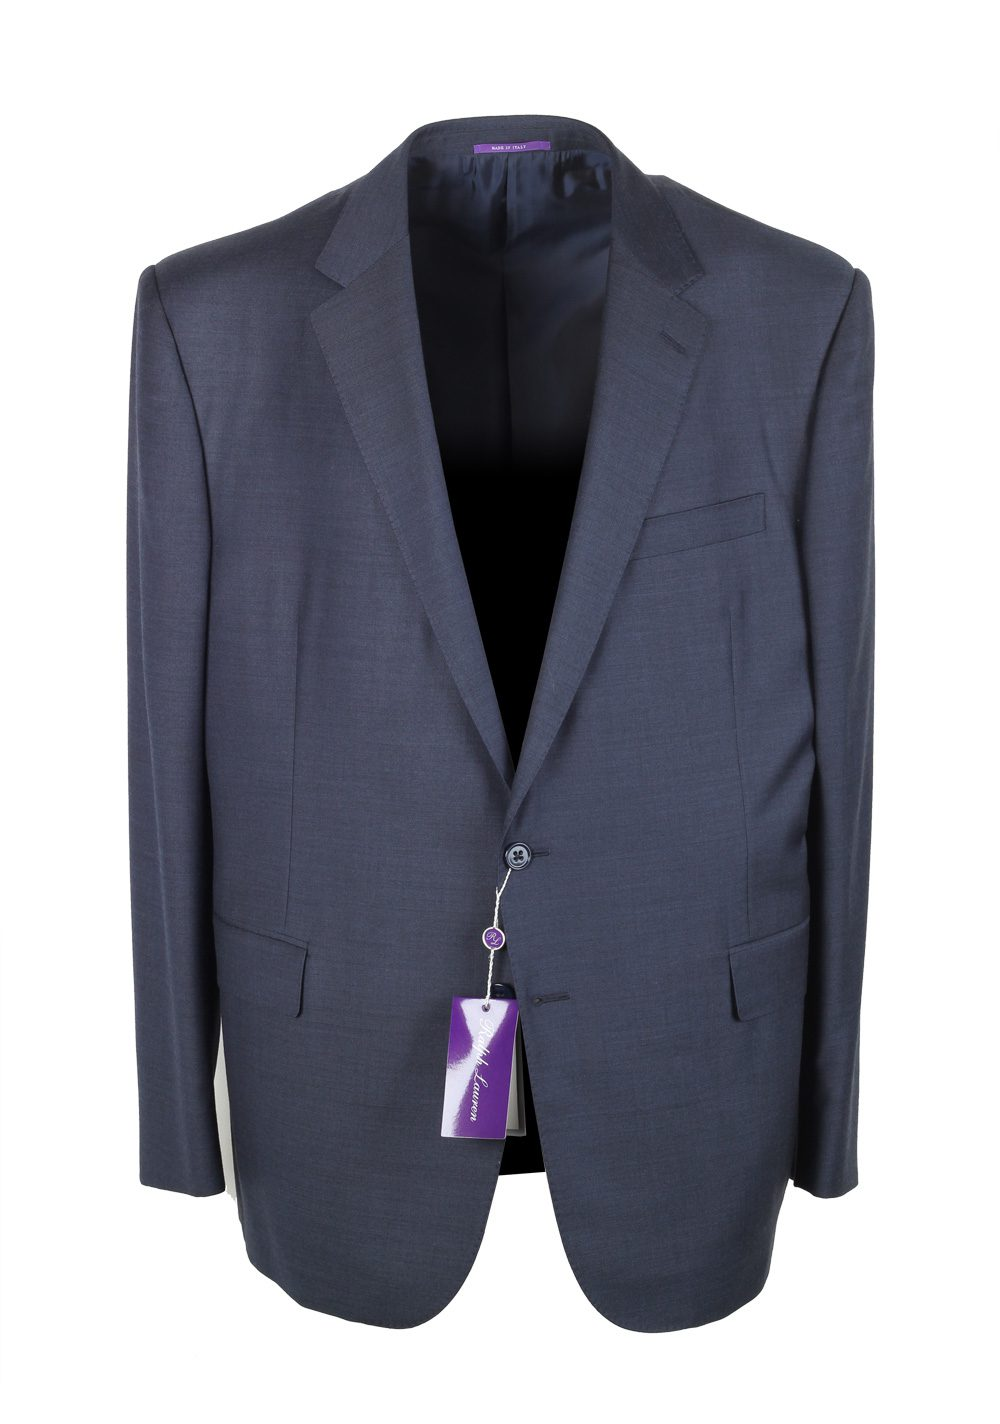 Ralph Lauren Purple Label Blue Suit Size 58 / 48R U.S. In Wool | Costume Limité